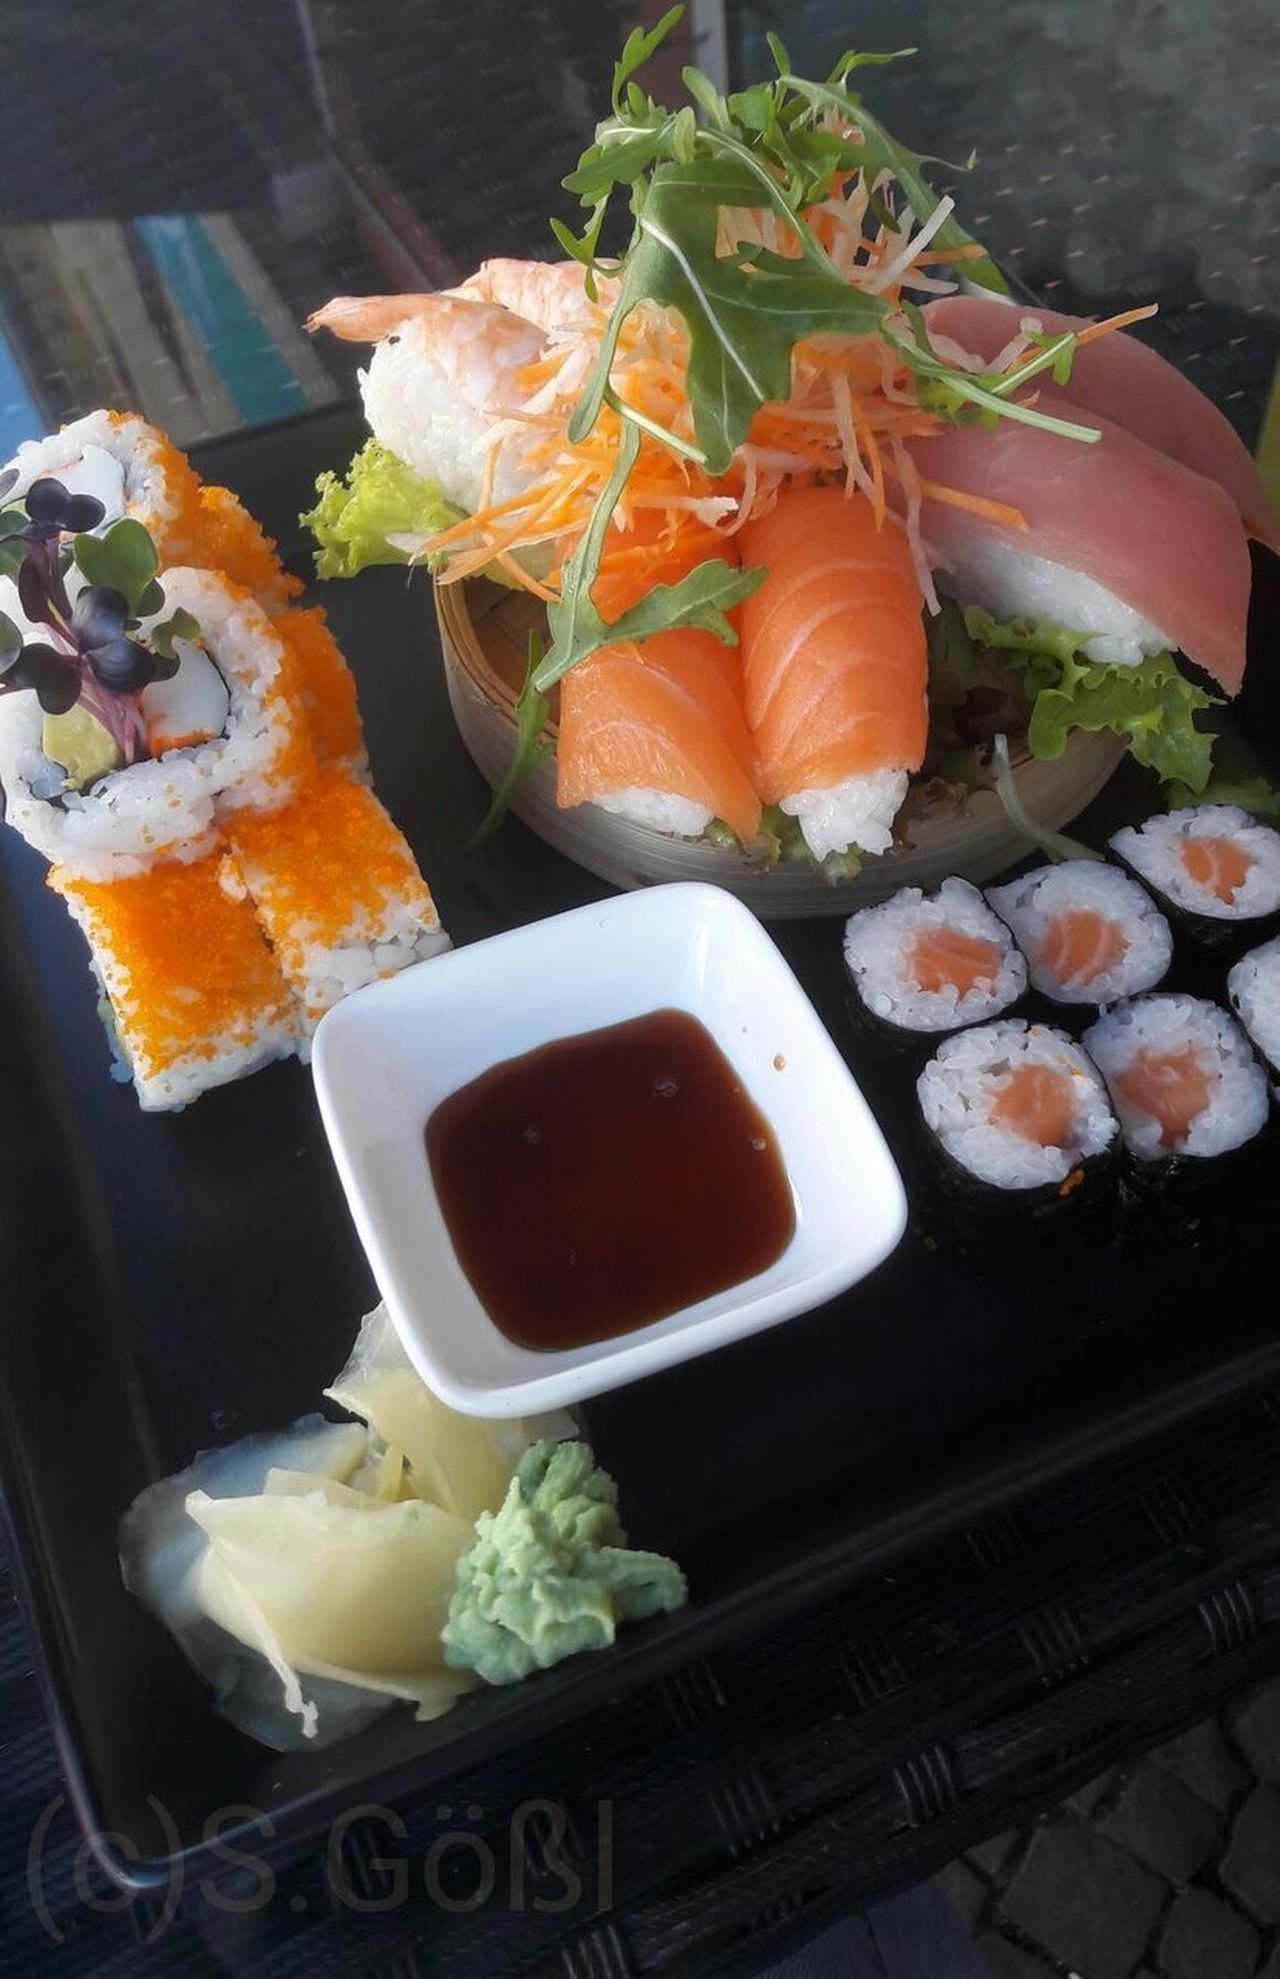 Sushi Seafood Food No People Healthy Eating Ready-to-eat Freshness Close-up Foodstagram Photooftheday Eyes4photography Food Styling Delicious Mr. Ky Hungry Yummy Look At This With Love And Passion Cooking Have A Nice Day Taking Photos Food And Drink Eberswalde Freshness